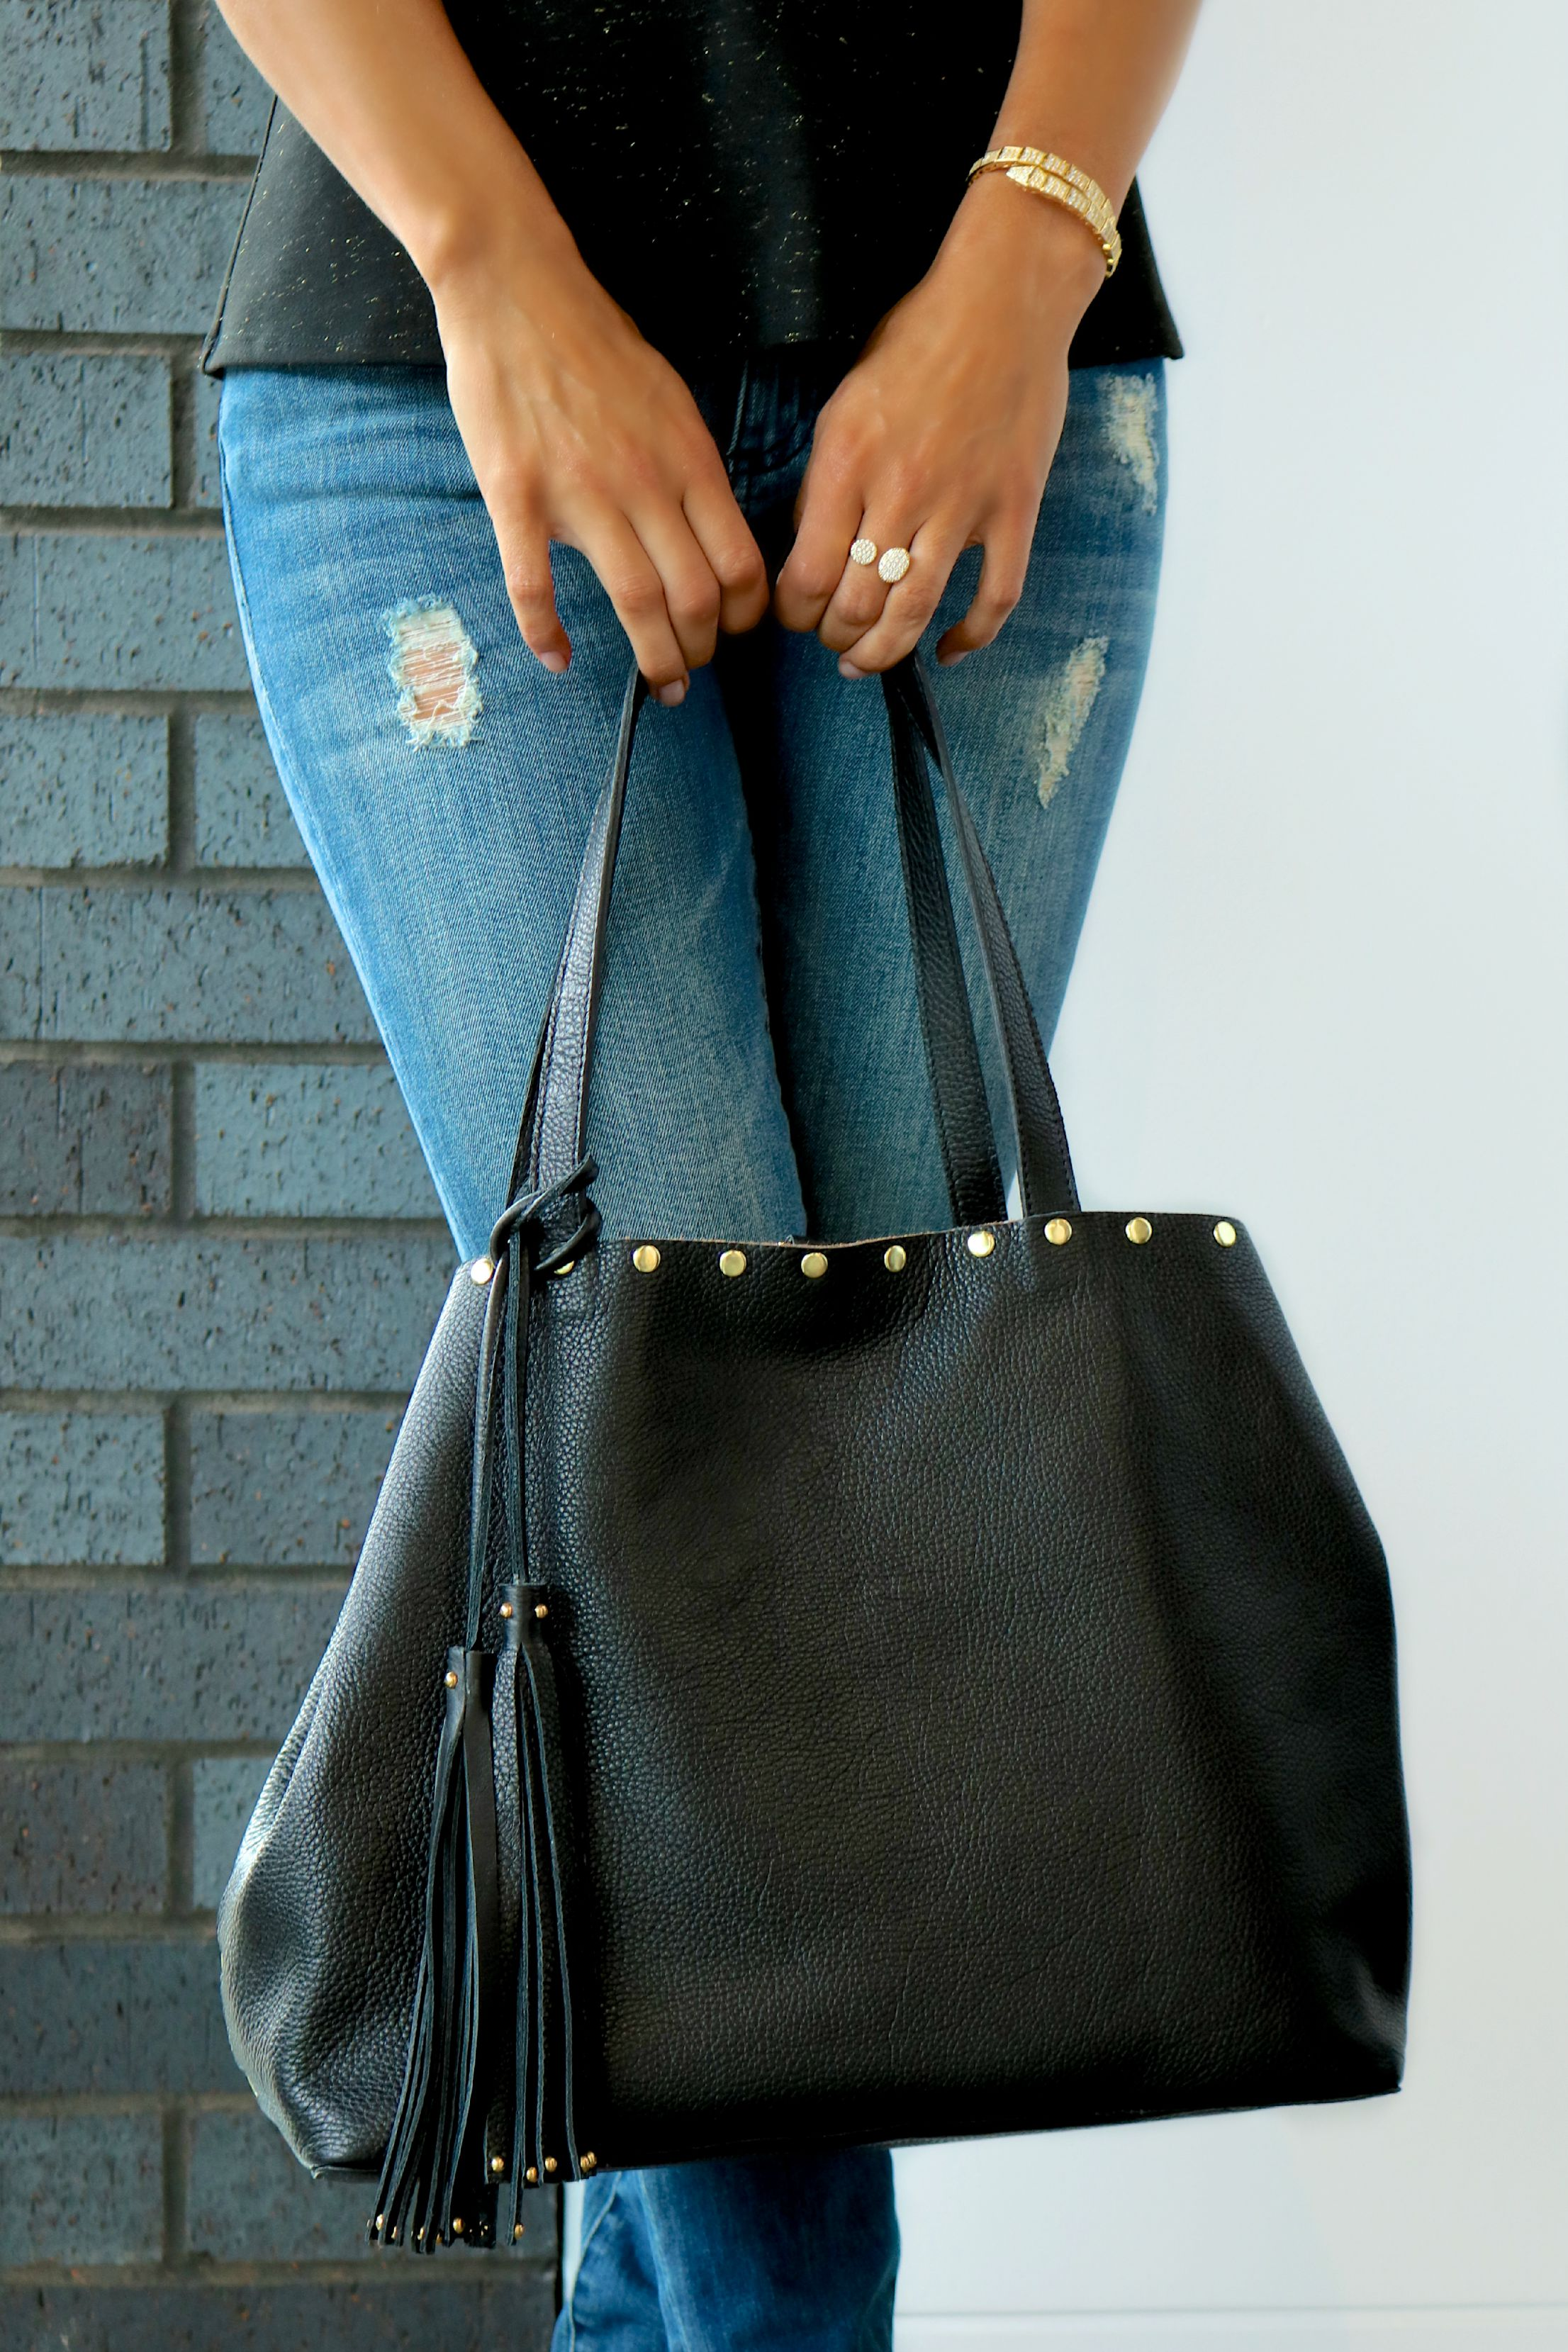 Florence Insta Sculpt In Hunter & LAGGO Leather Tote Available In Store